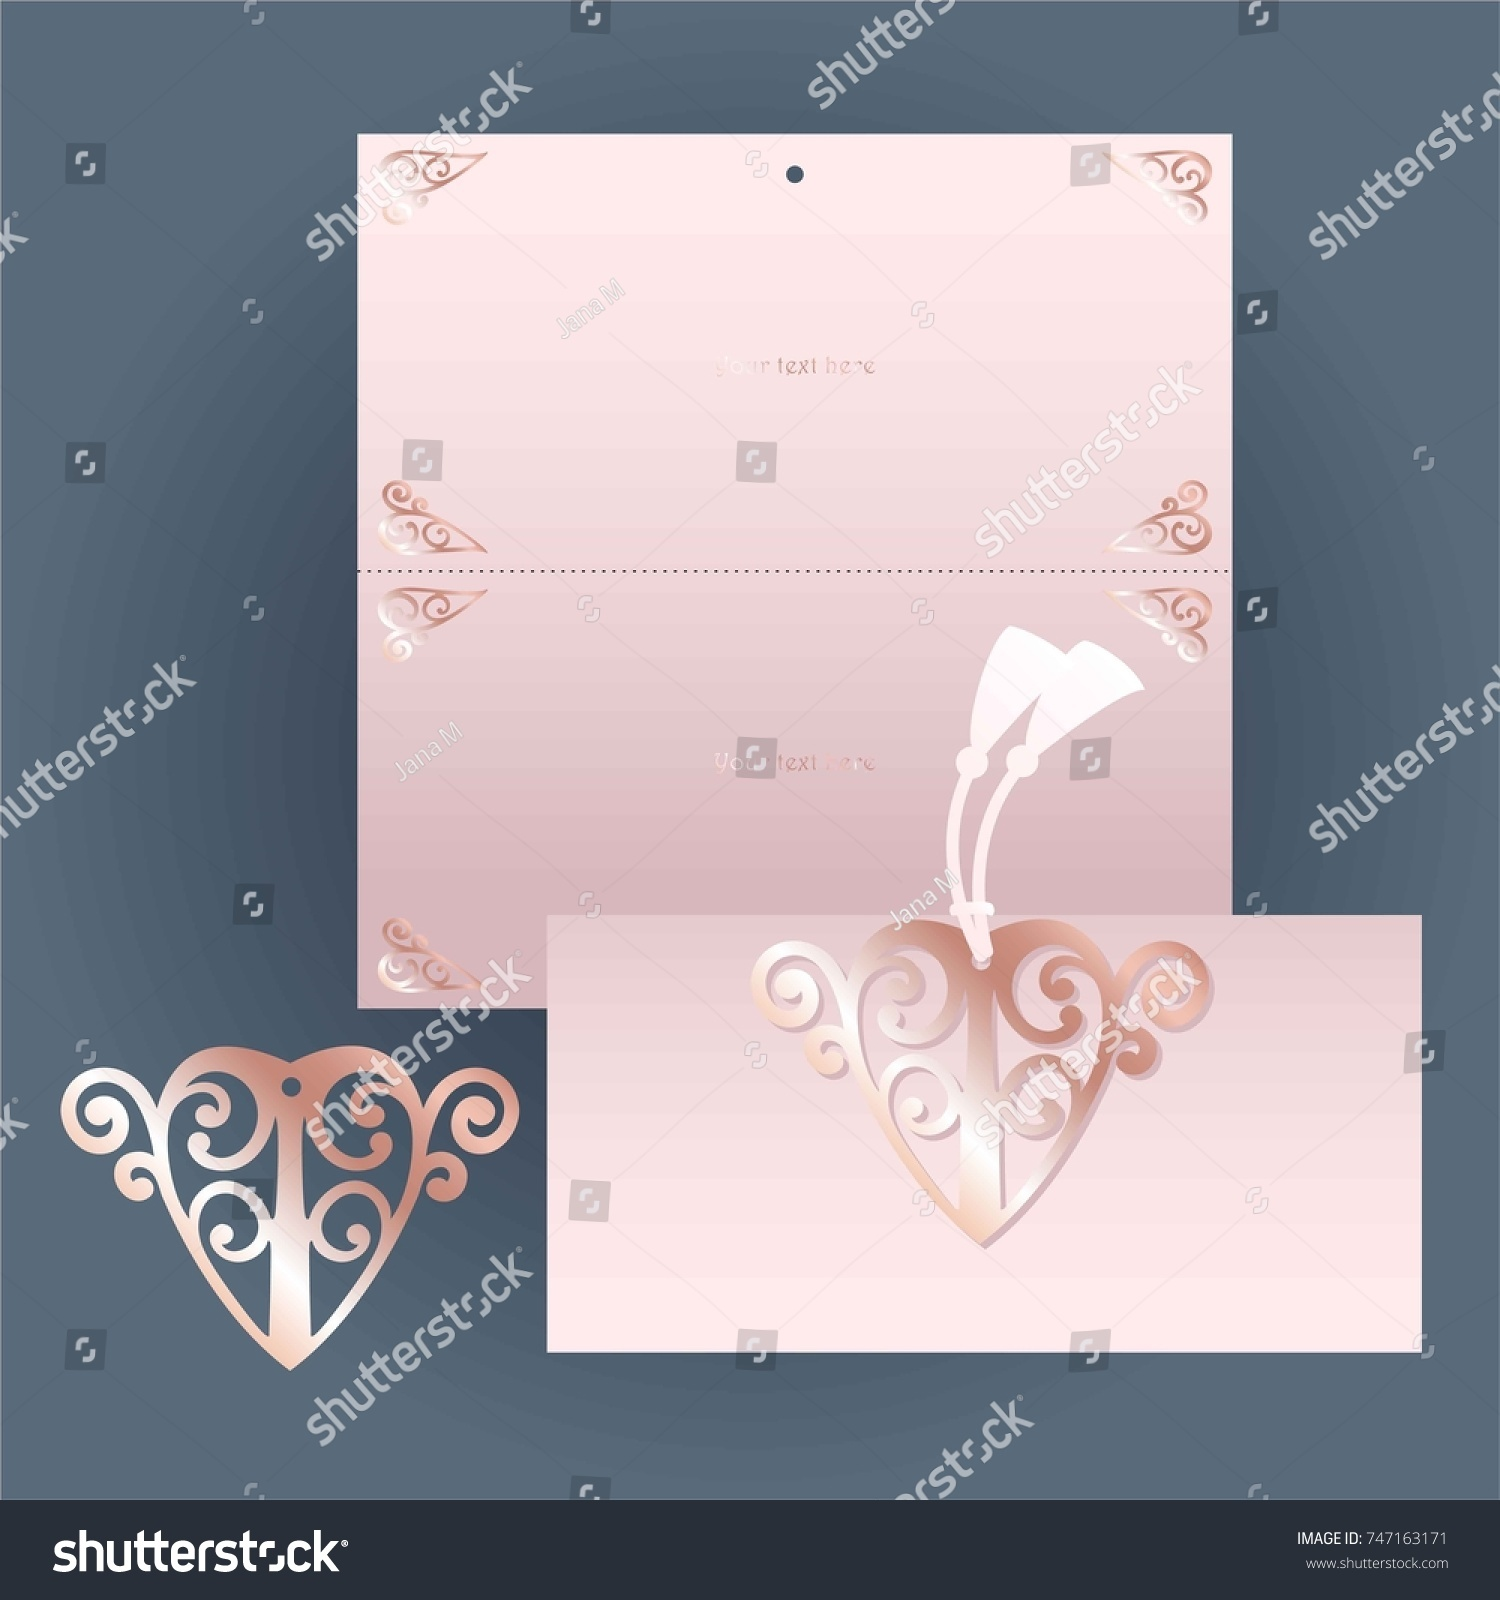 rose invitation cutout rose gold heart stock vector royalty free